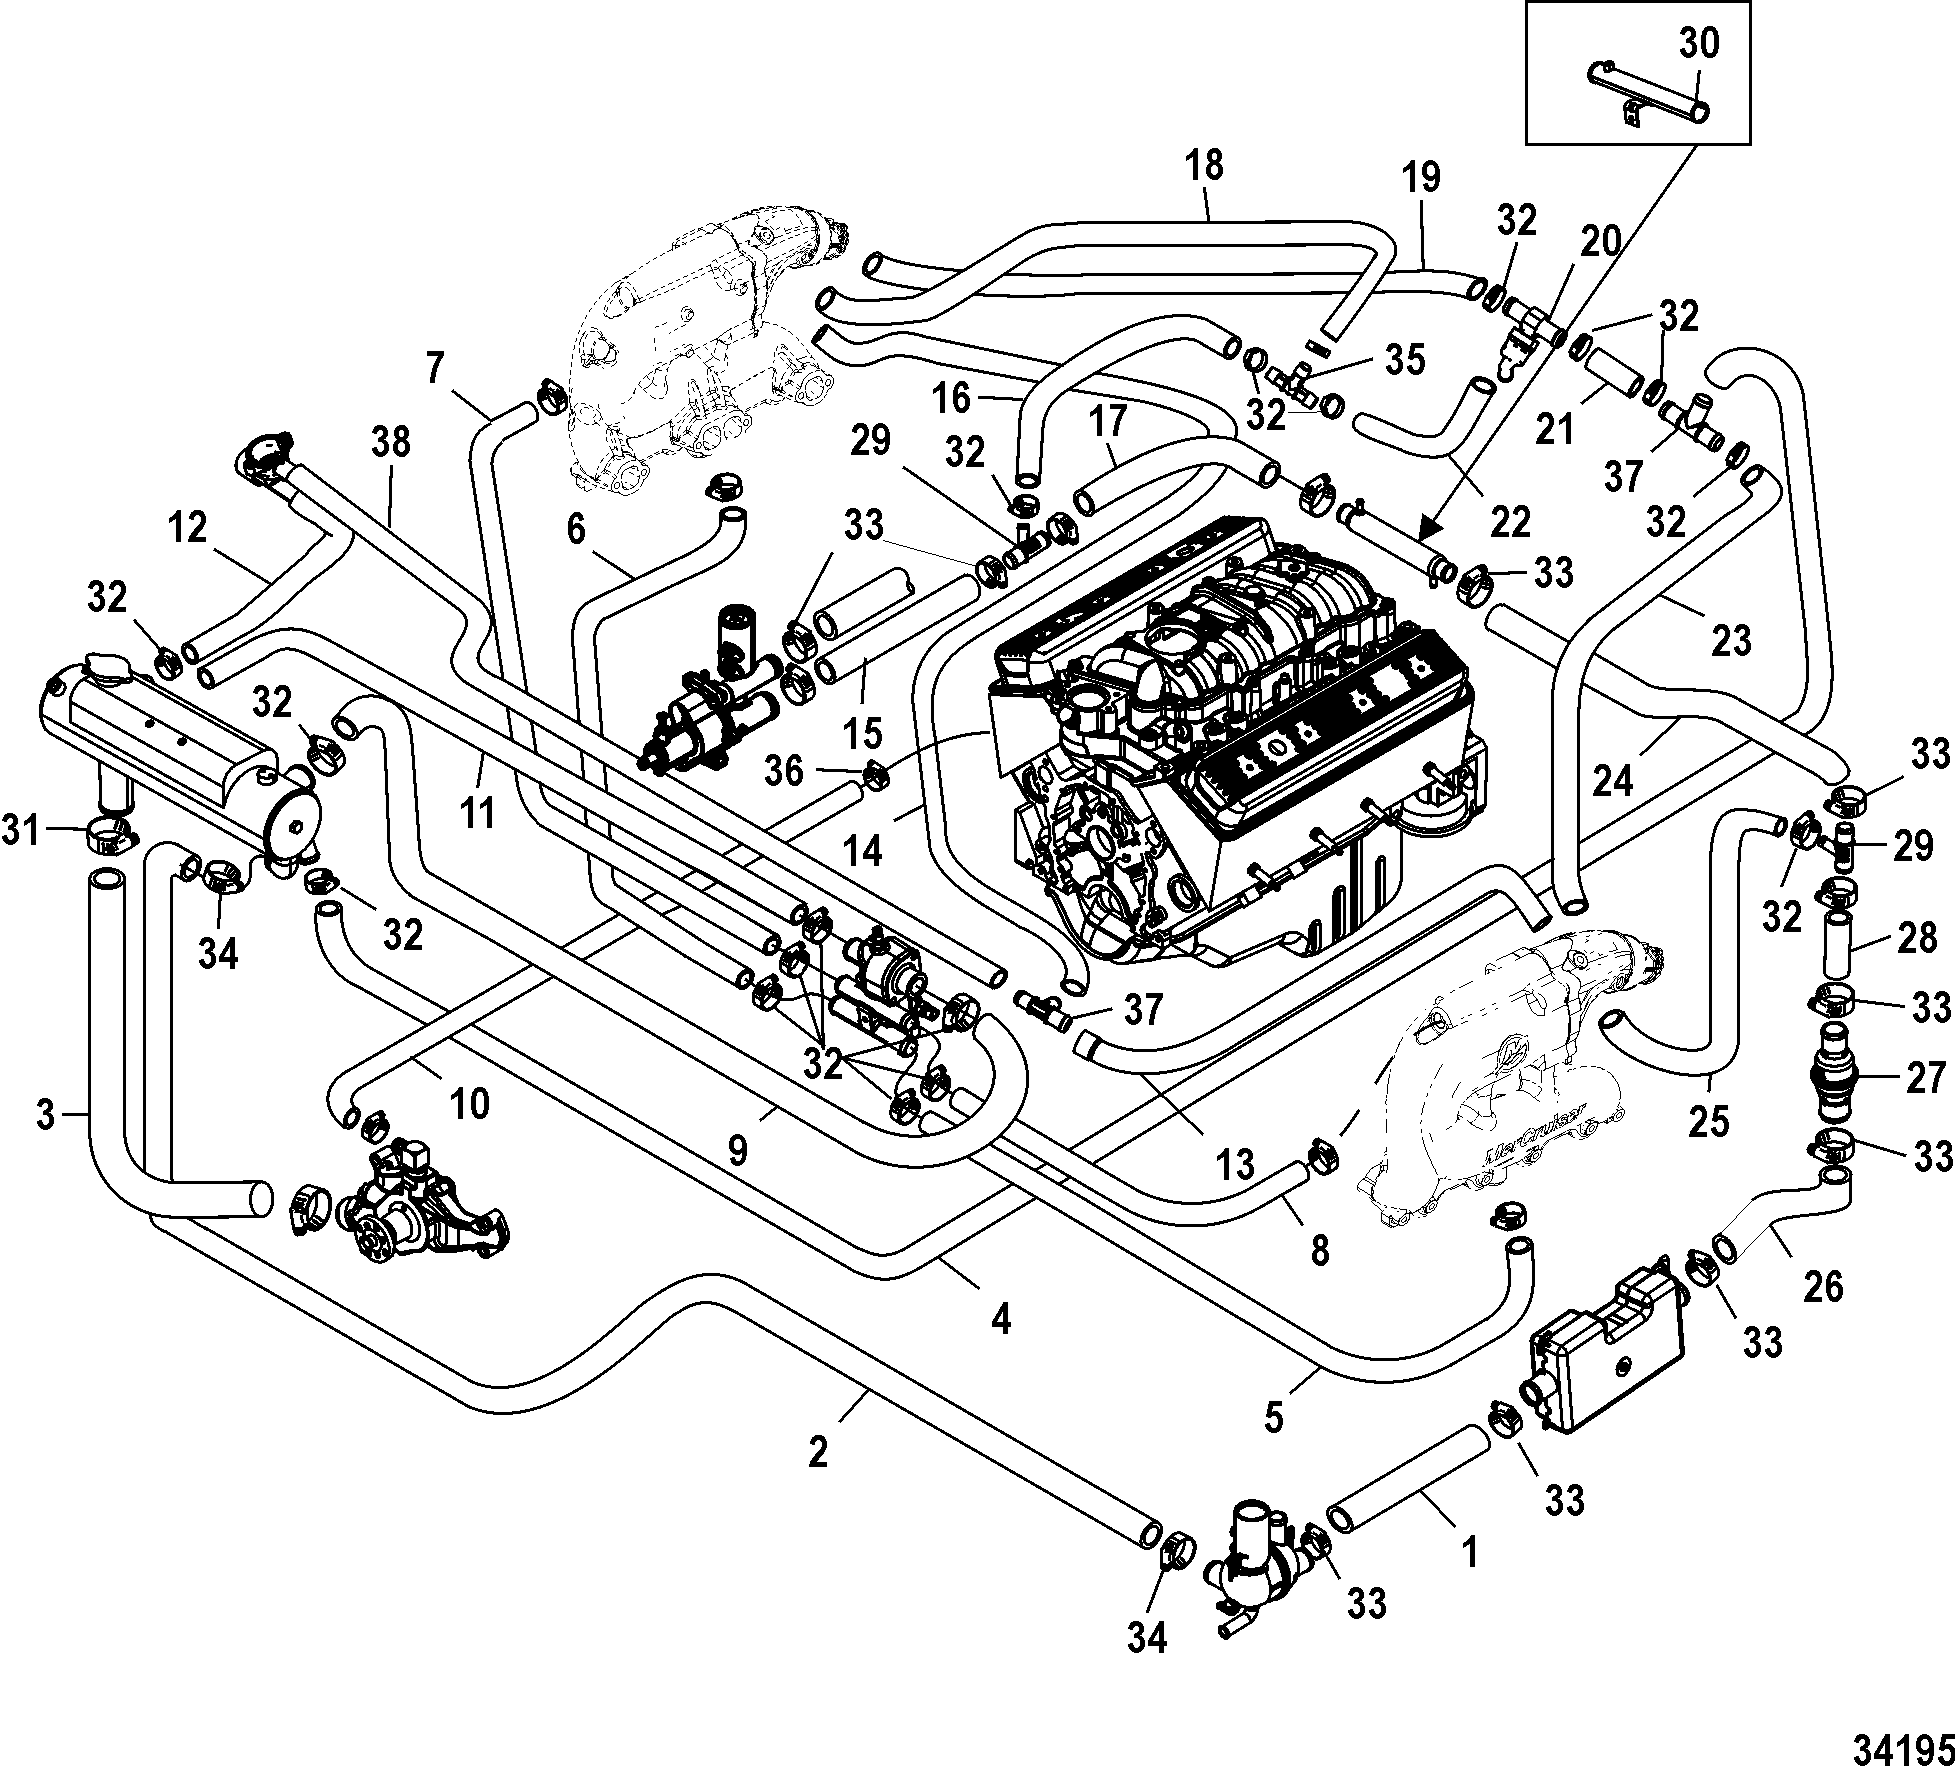 1998 50 Mercruiser Engine Diagram Trusted Wiring 4 3 Liter 350 Mag Mpi Horizon Alpha 1986